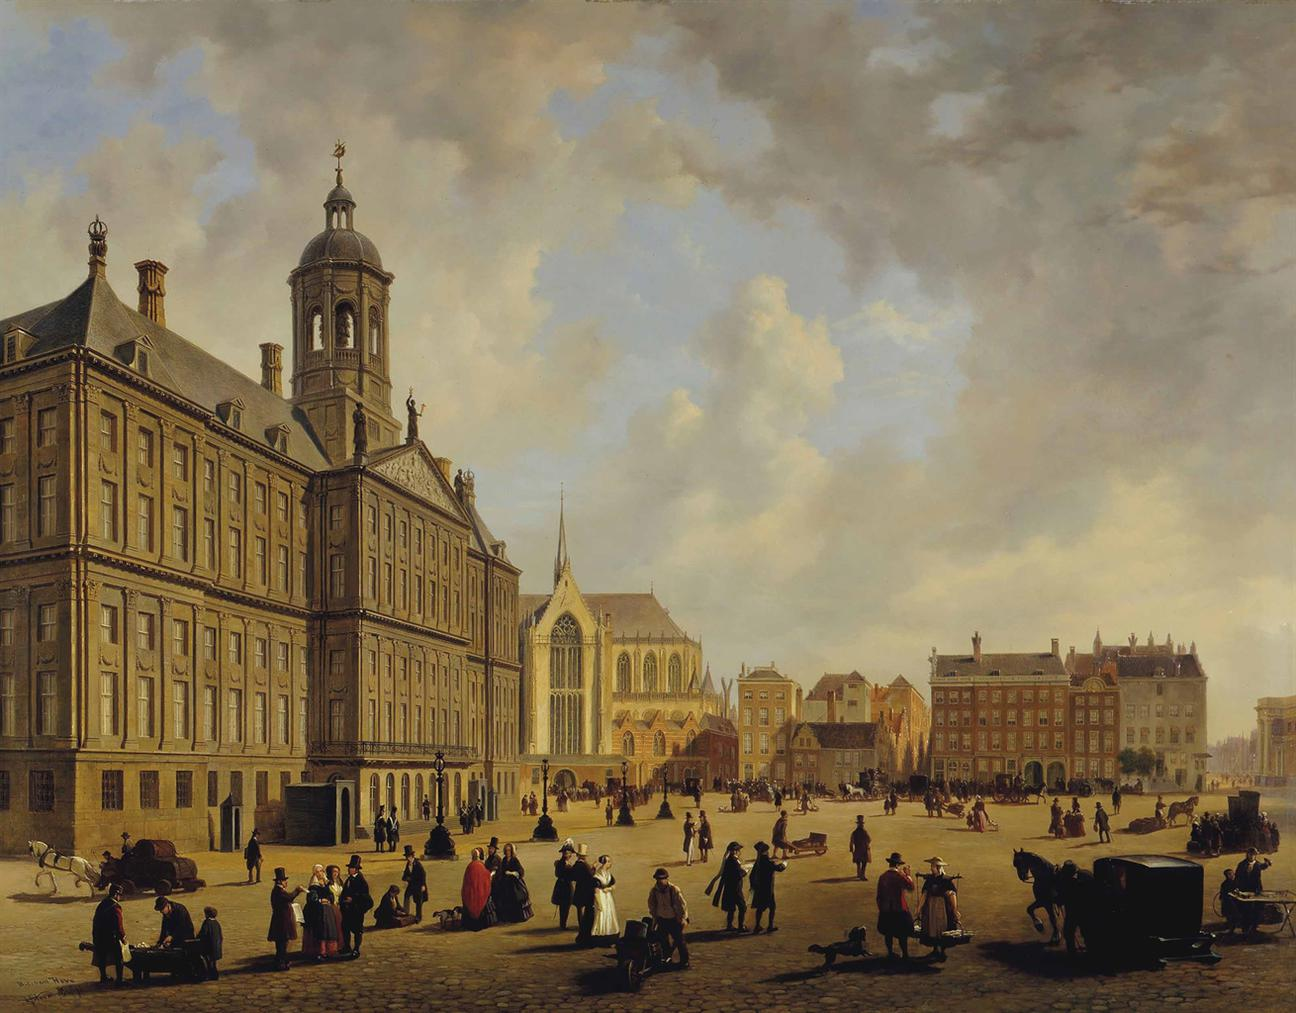 Bartholomeus Johannes Van Hove - A Bustling Day In Front Of The City Hall On The Dam Square, The Nieuwe Kerk In The Distance, Amsterdam-